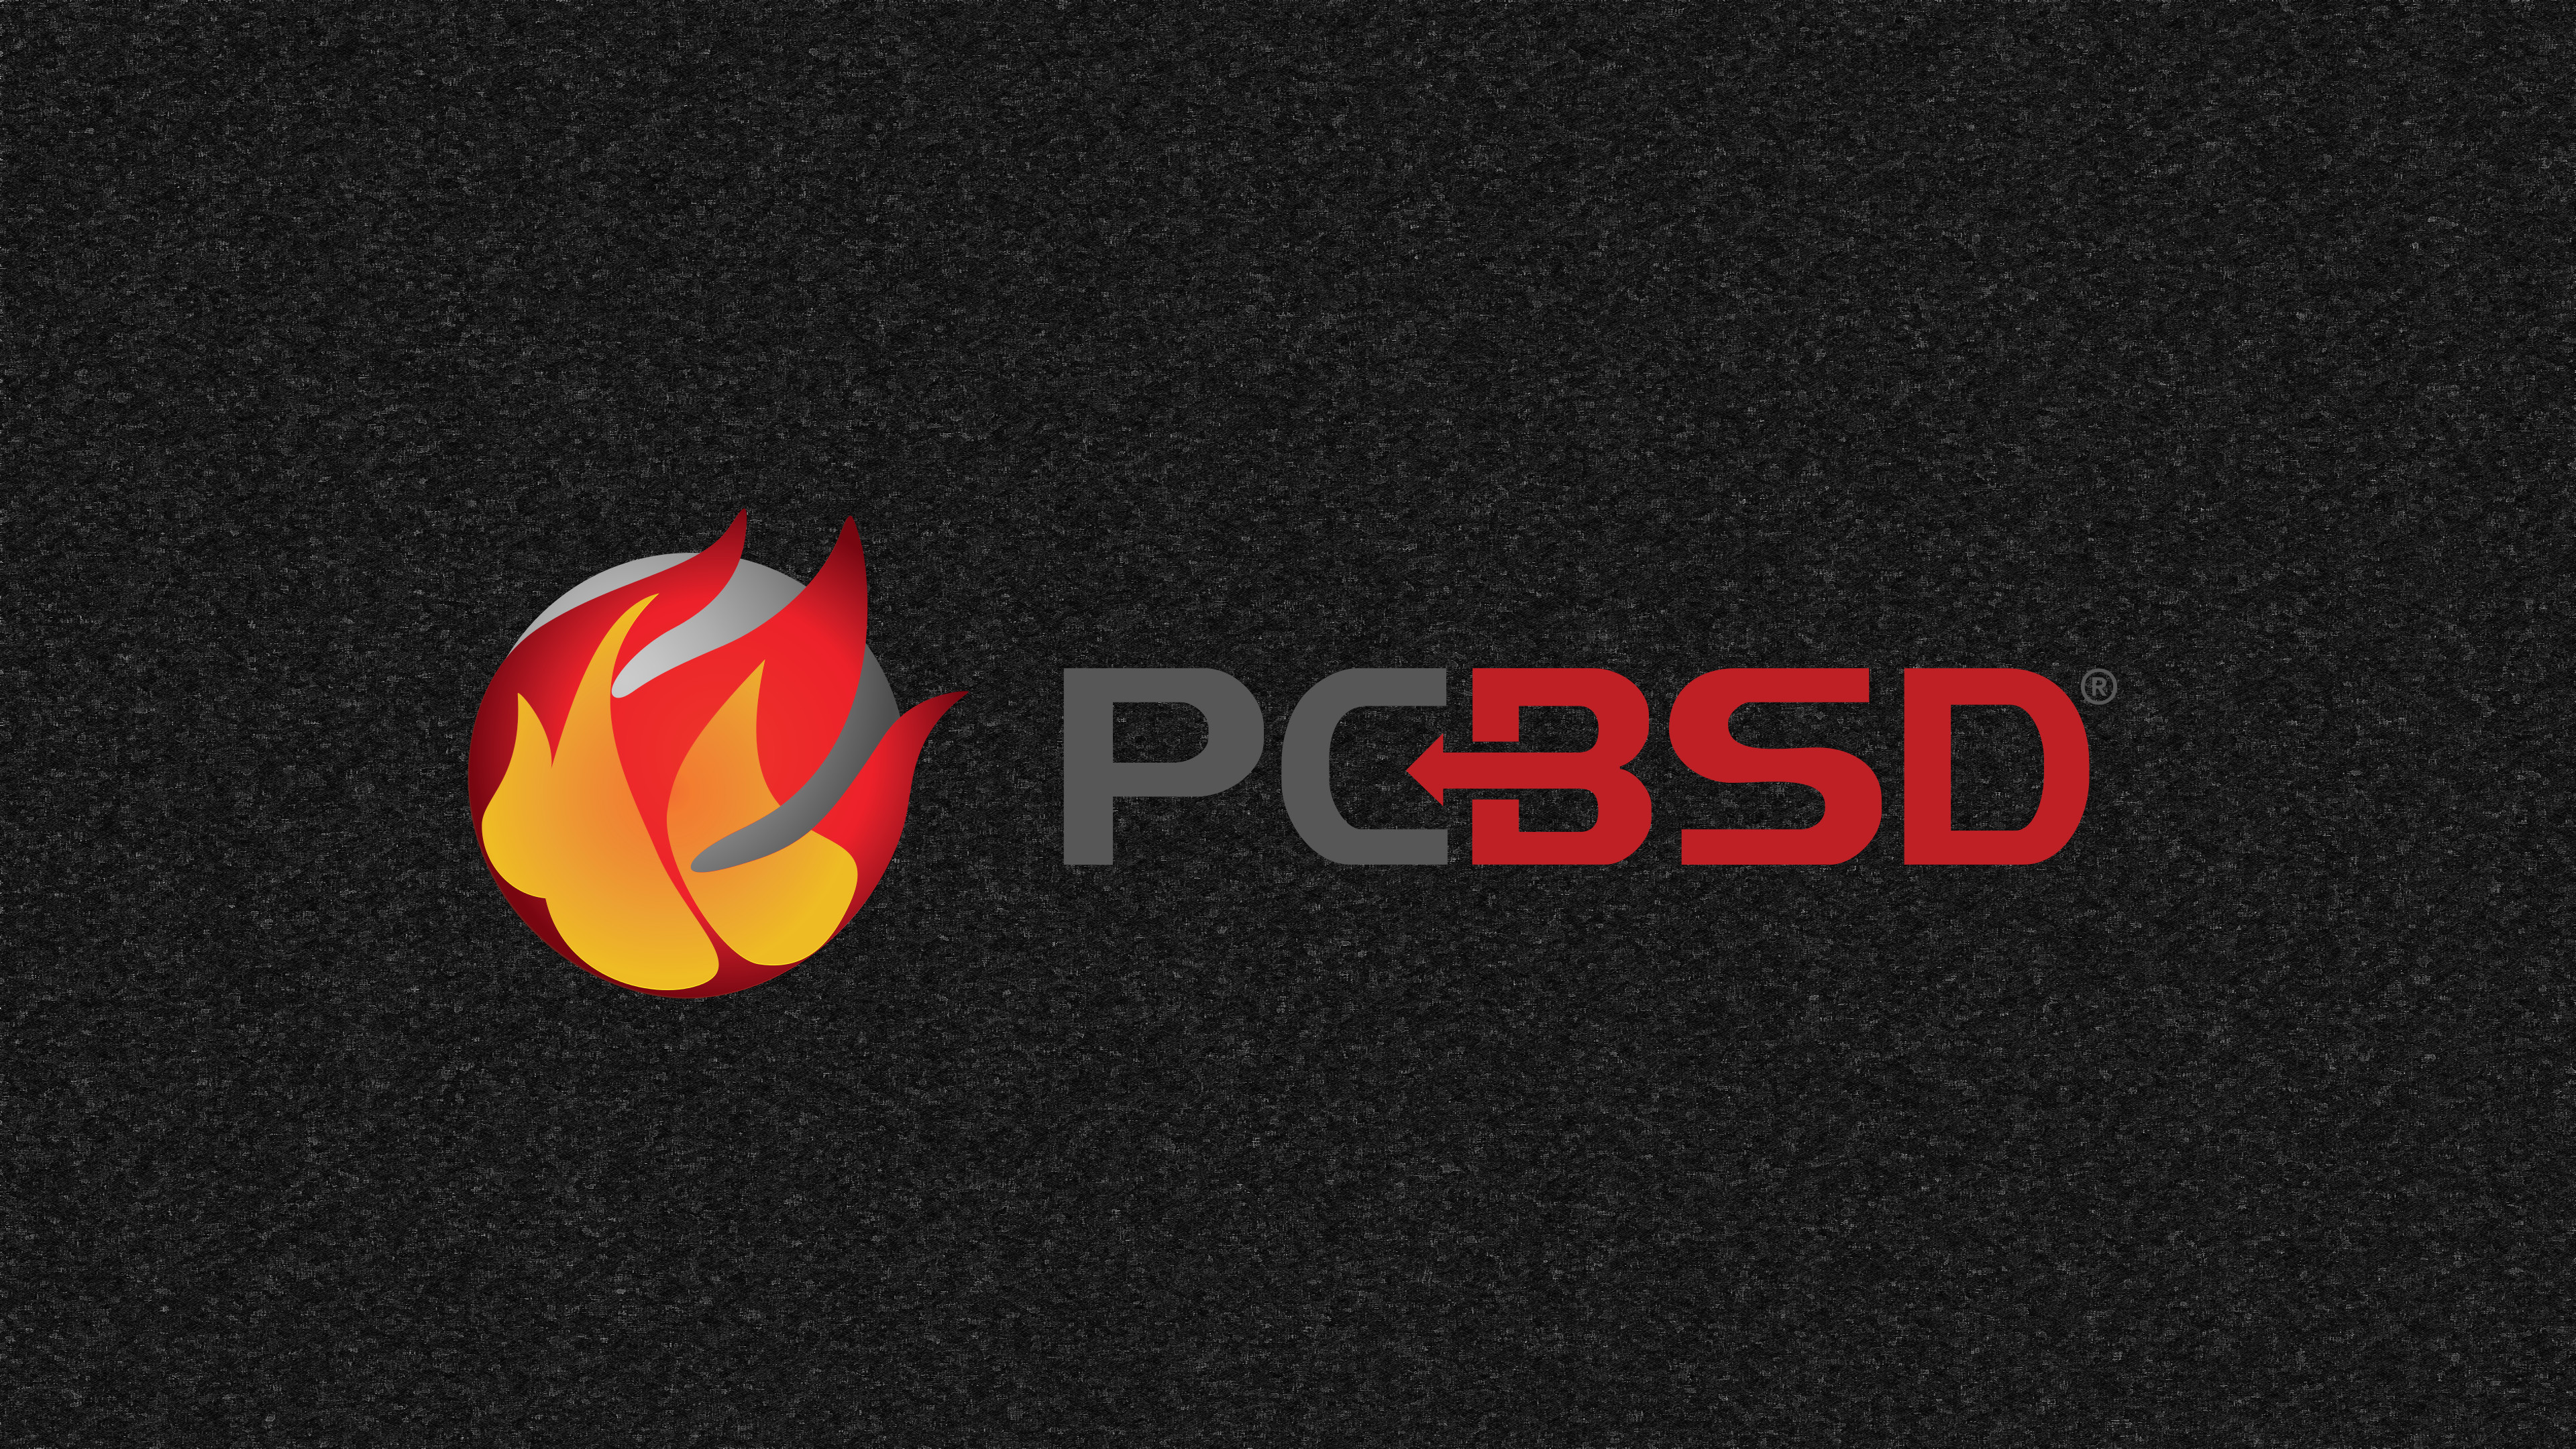 Res: 3840x2160, Check out these cool PC-BSD wallpapers, designed by user q5sys. Visit their  blog for the full set of high resolution wallpapers.